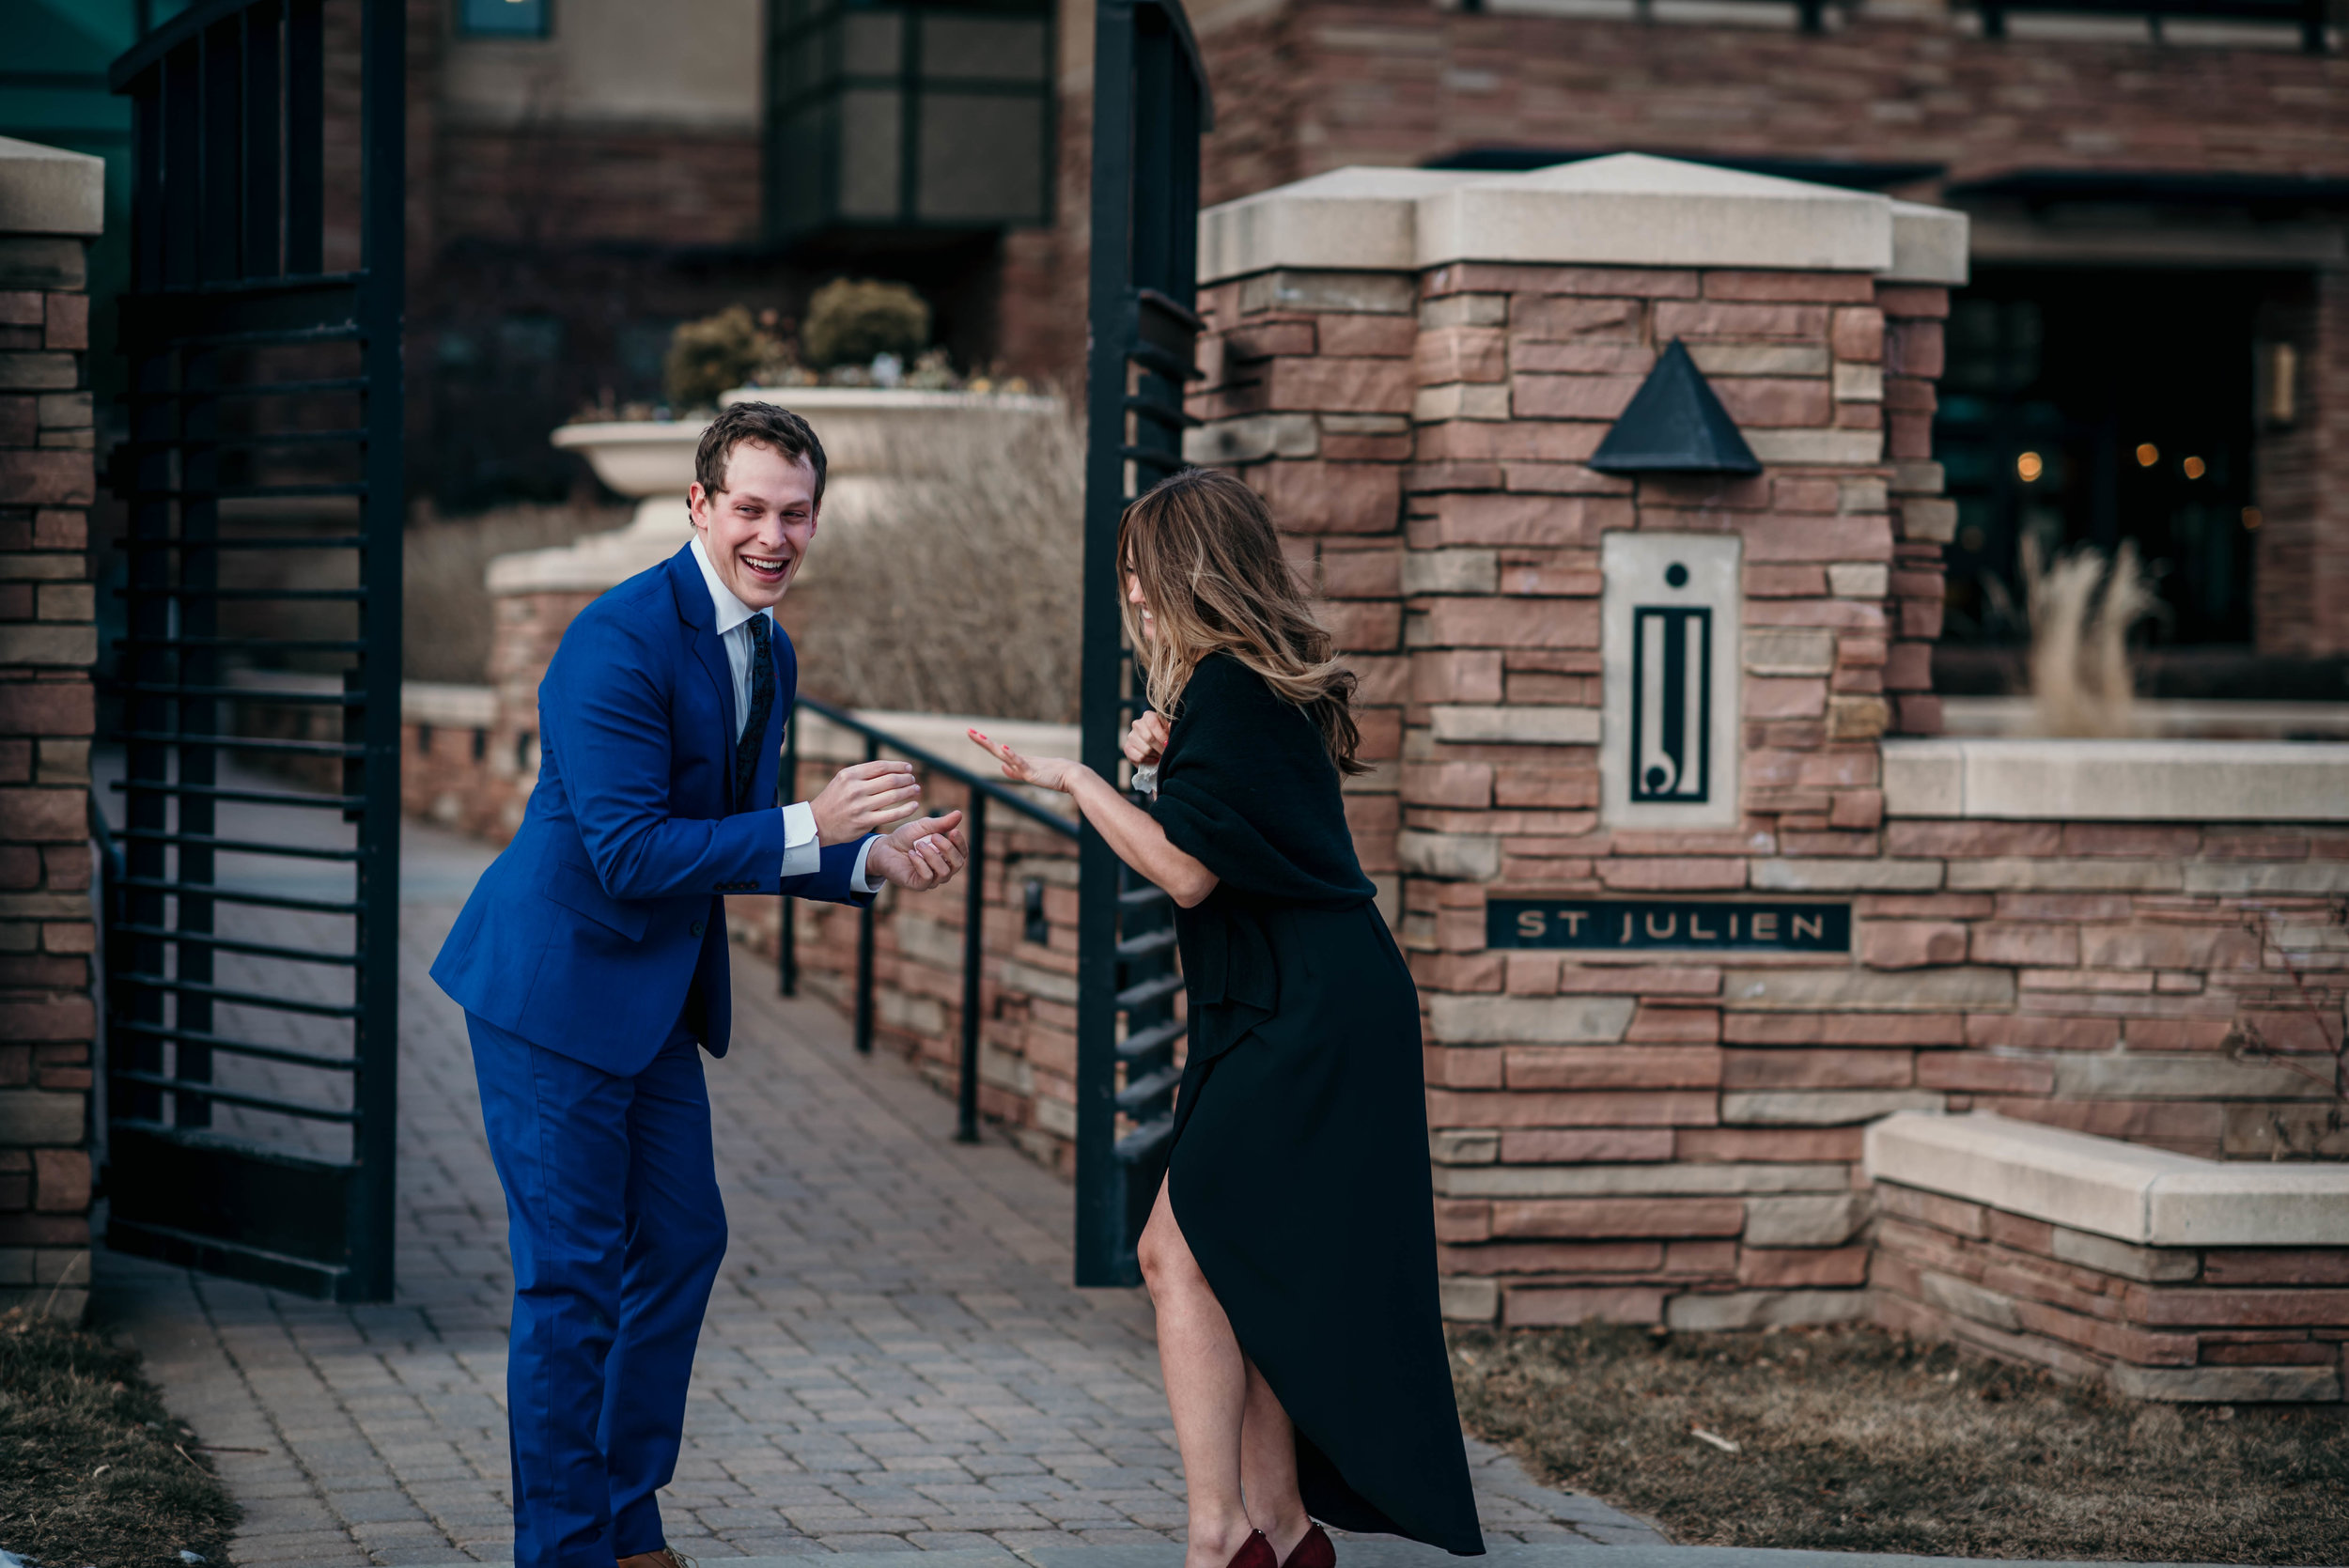 colorado_proposal_photographer_0329.jpg